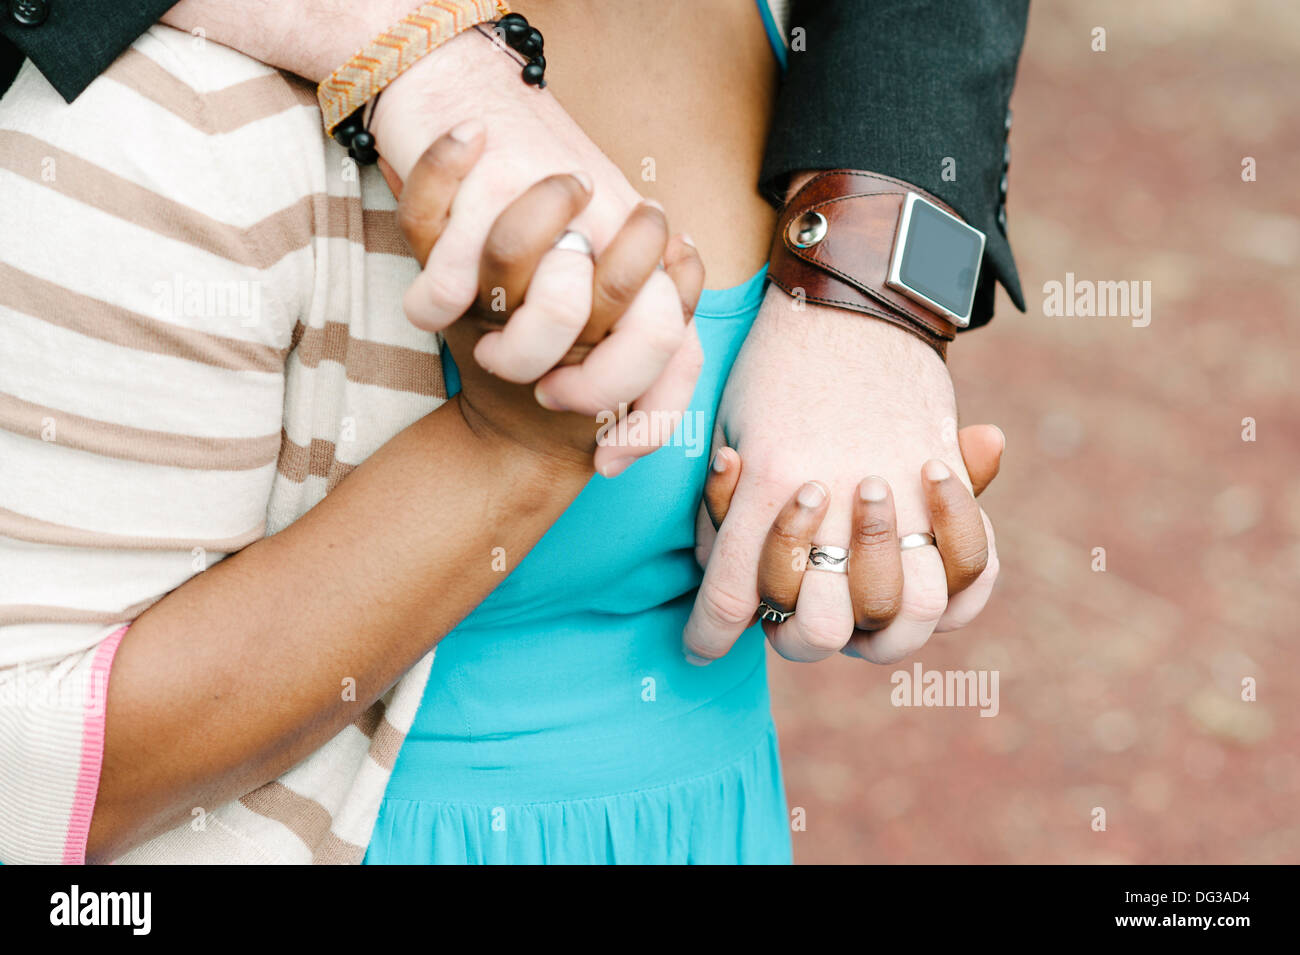 L'Interracial Couple Holding Hands, Close Up Photo Stock